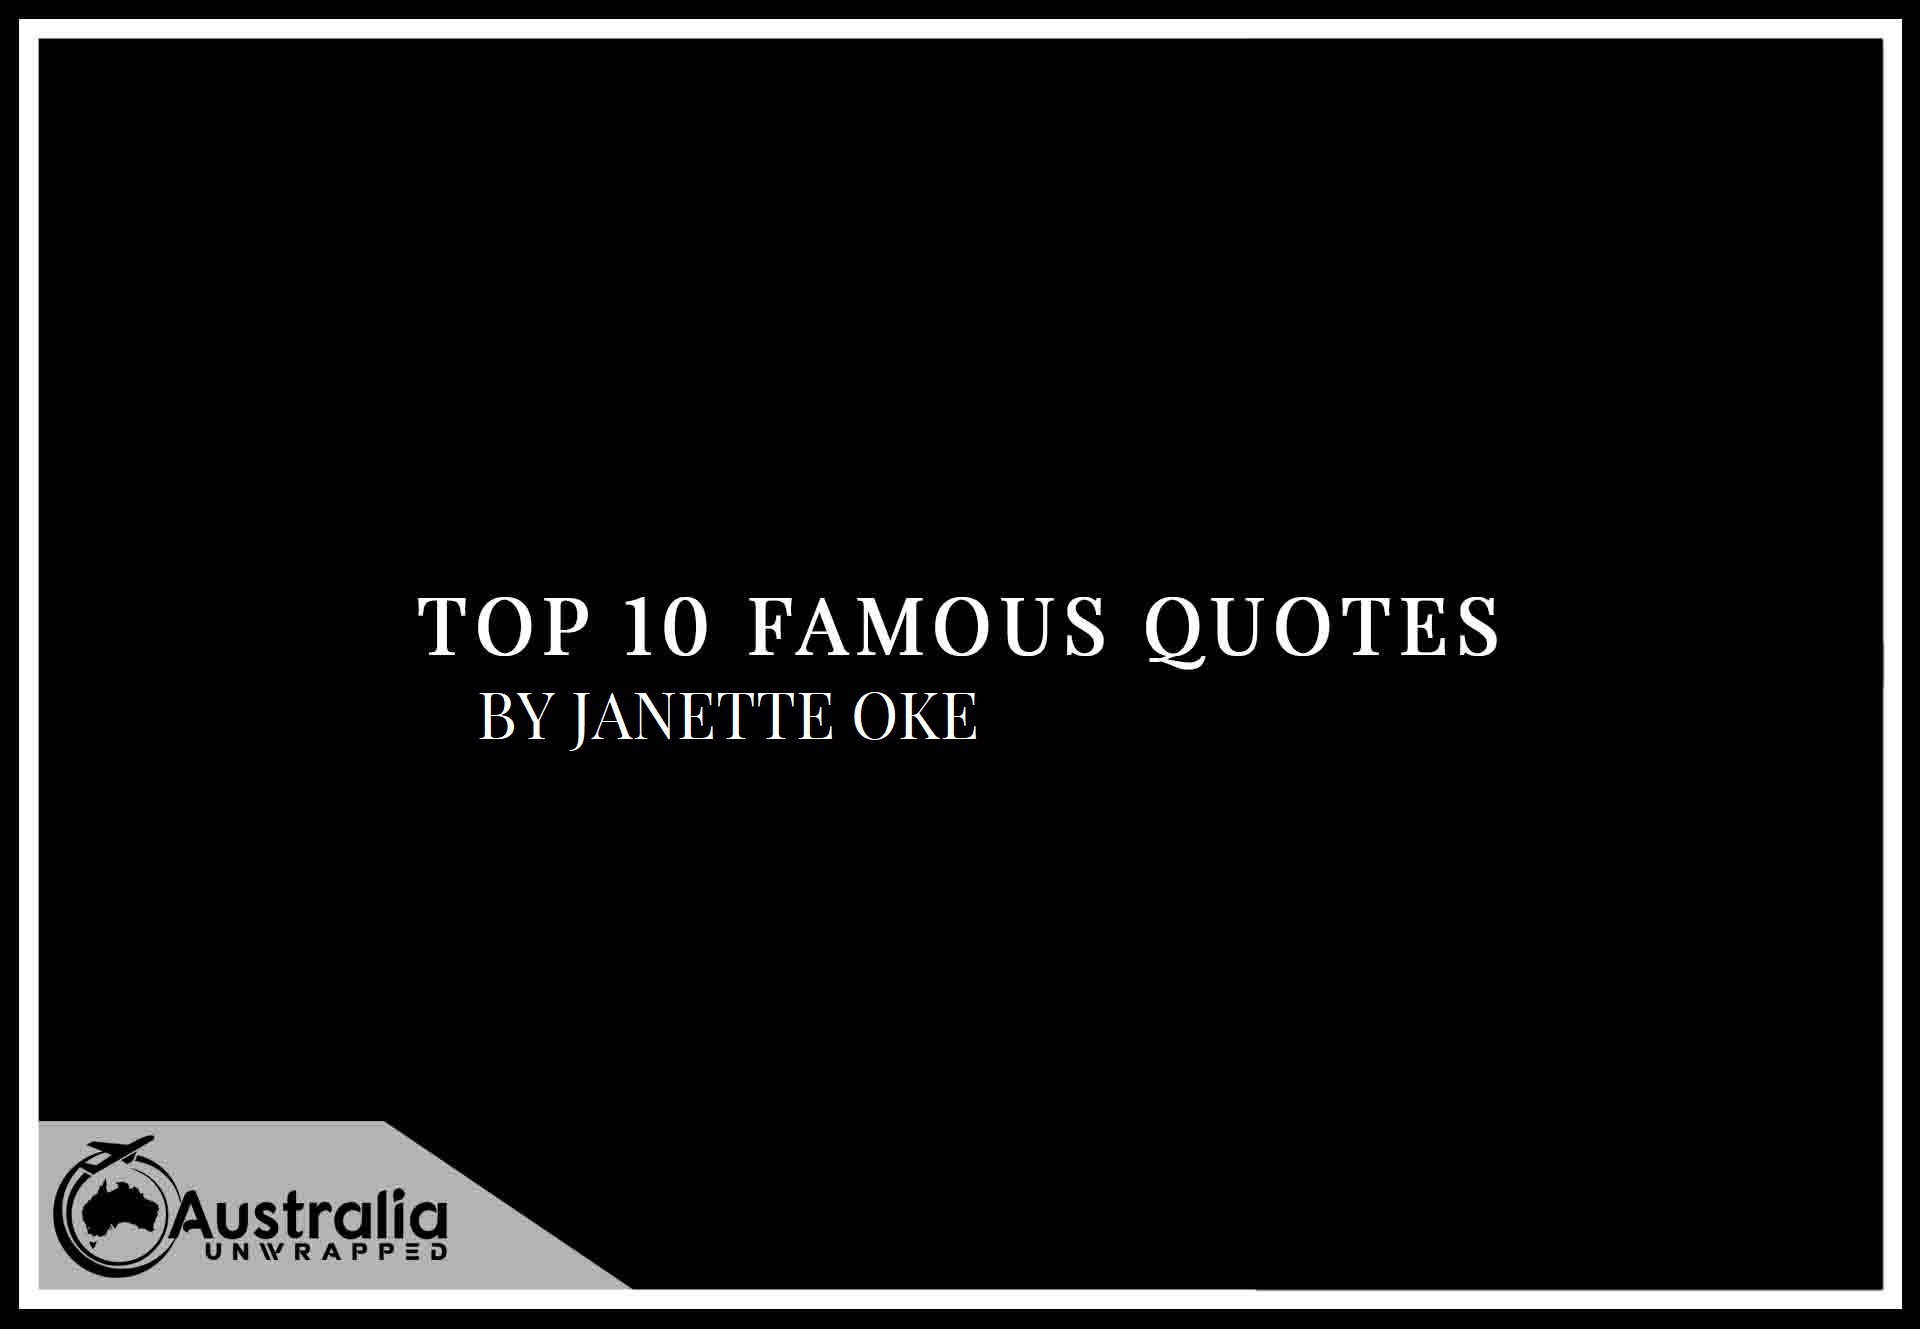 Top 10 Famous Quotes by Author Janette Oke